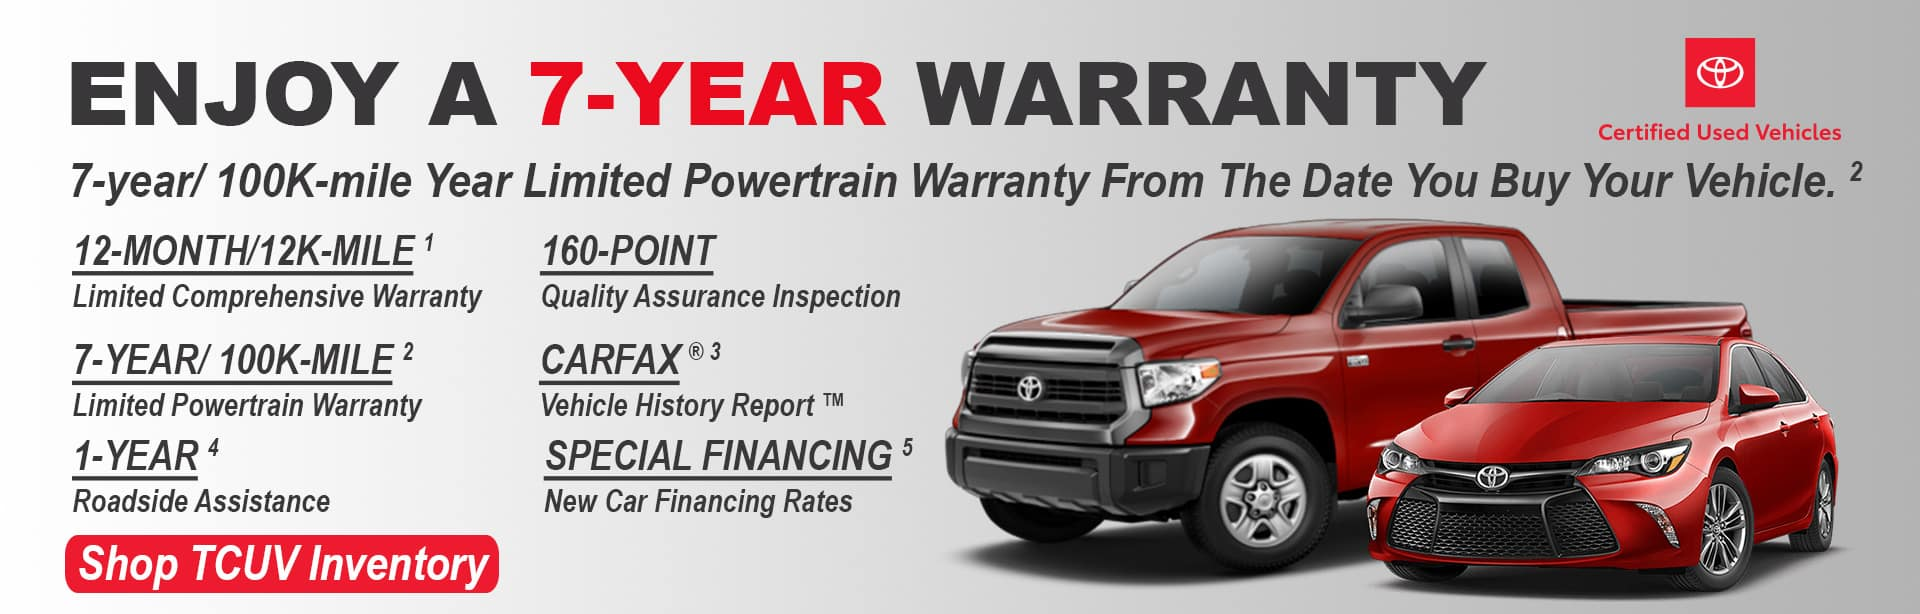 Enjoy a warranty for 7 years on a TCUV from Andrew Toyota. See dealer for details.